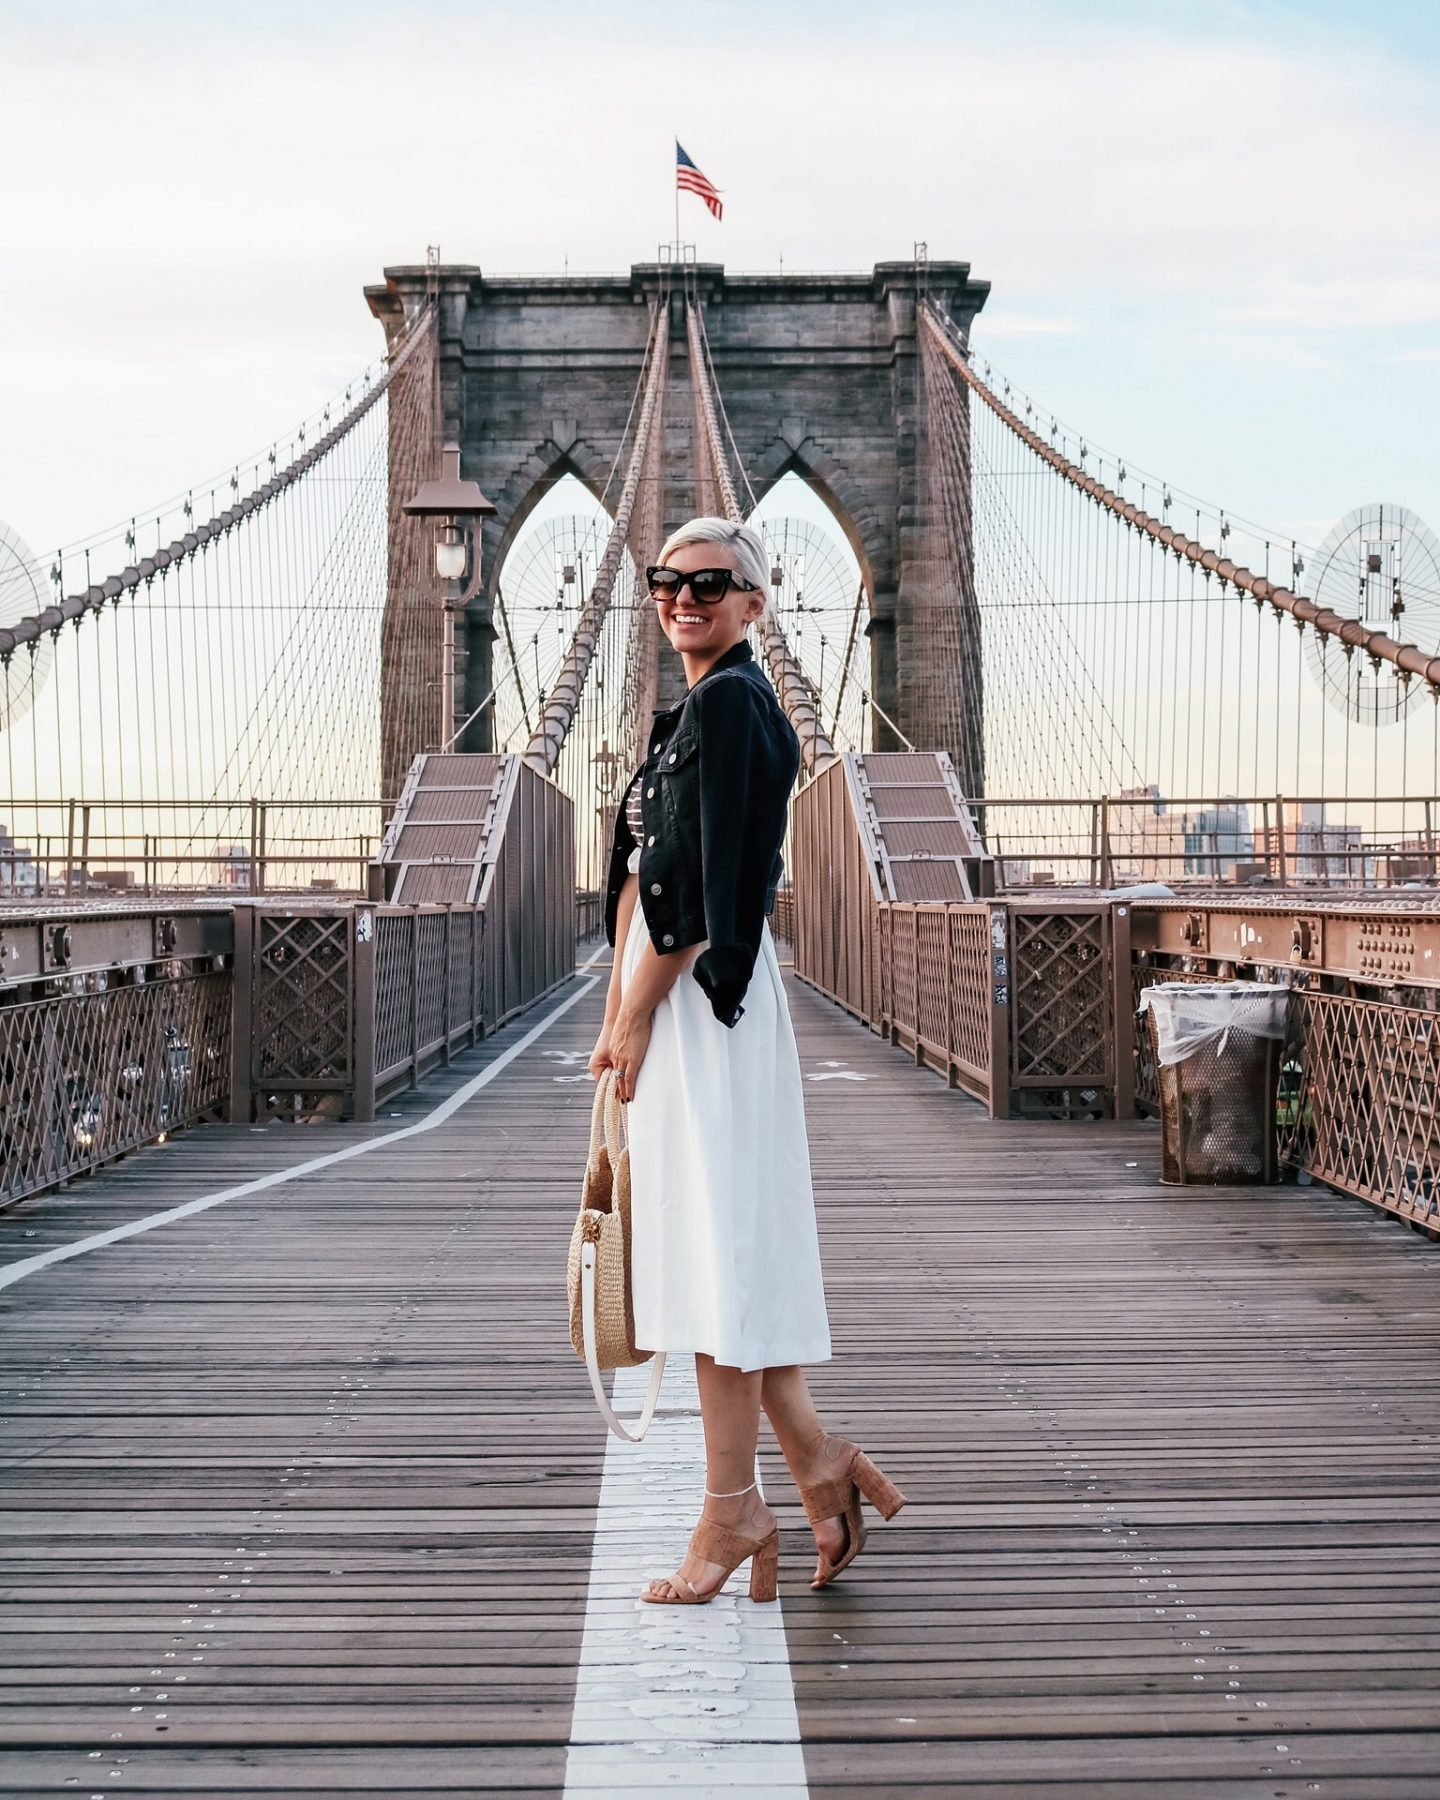 brooklyn bridge, nyc guide, what to do in NYC, where to take pictures in NYC